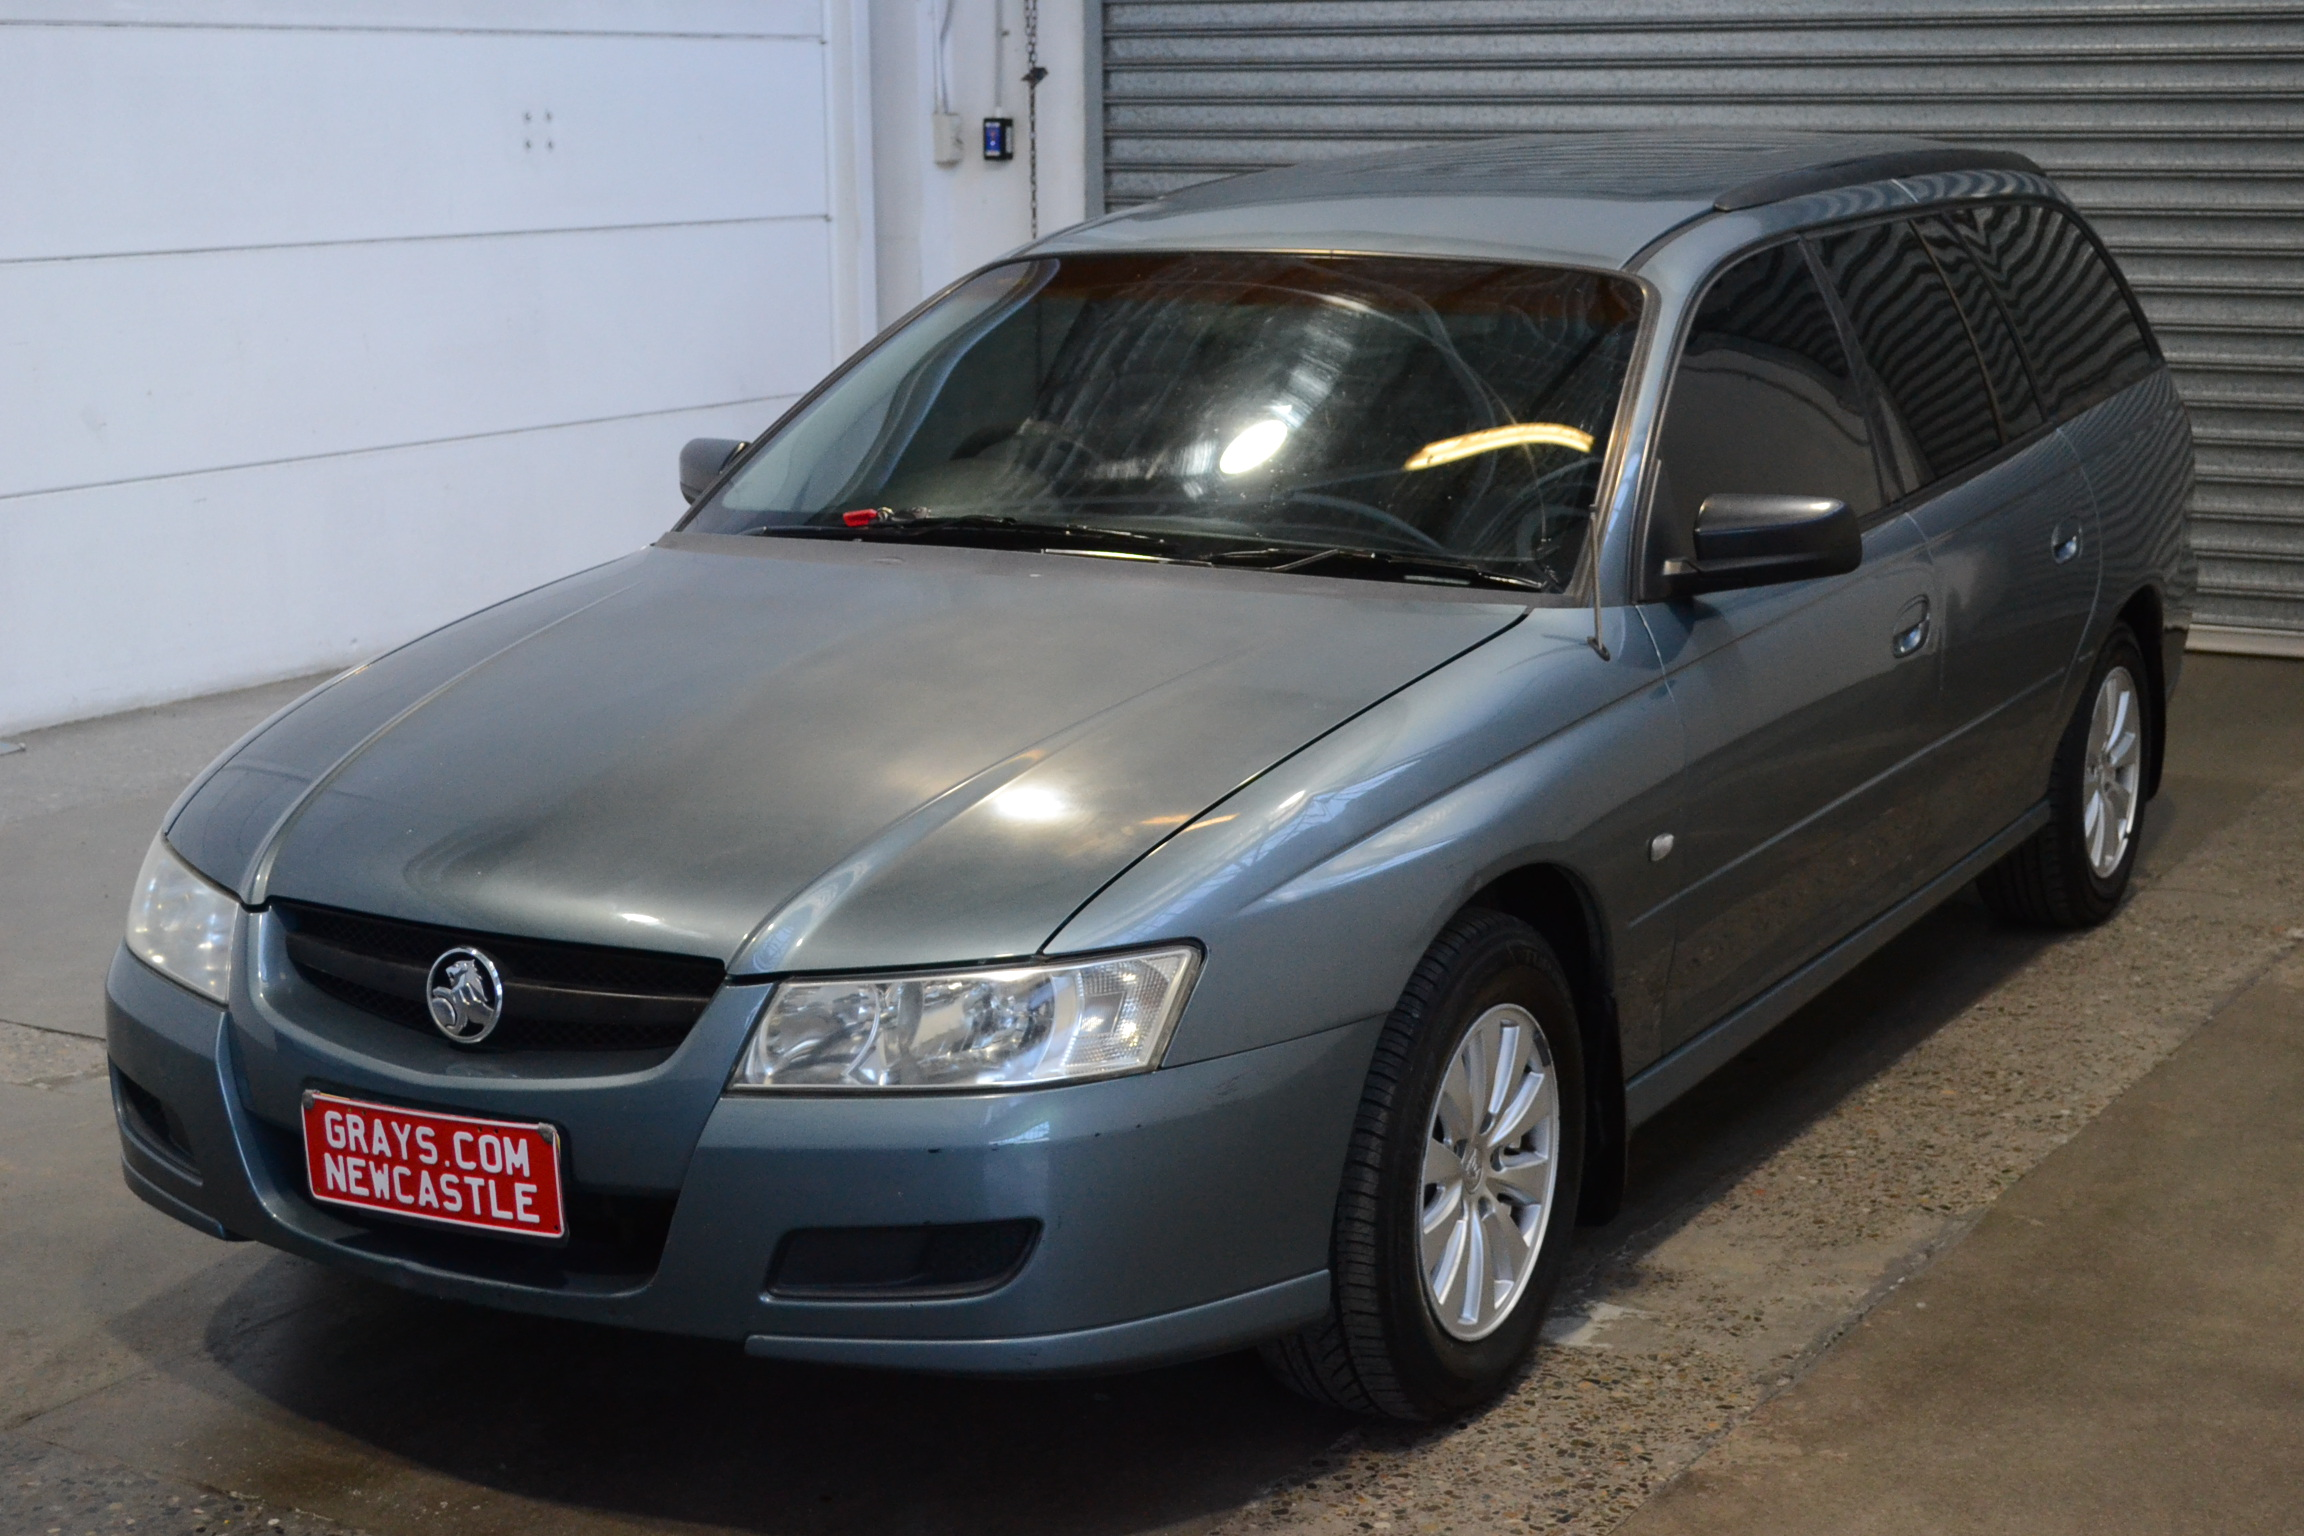 2006 Holden Commodore Executive VZ Automatic Wagon